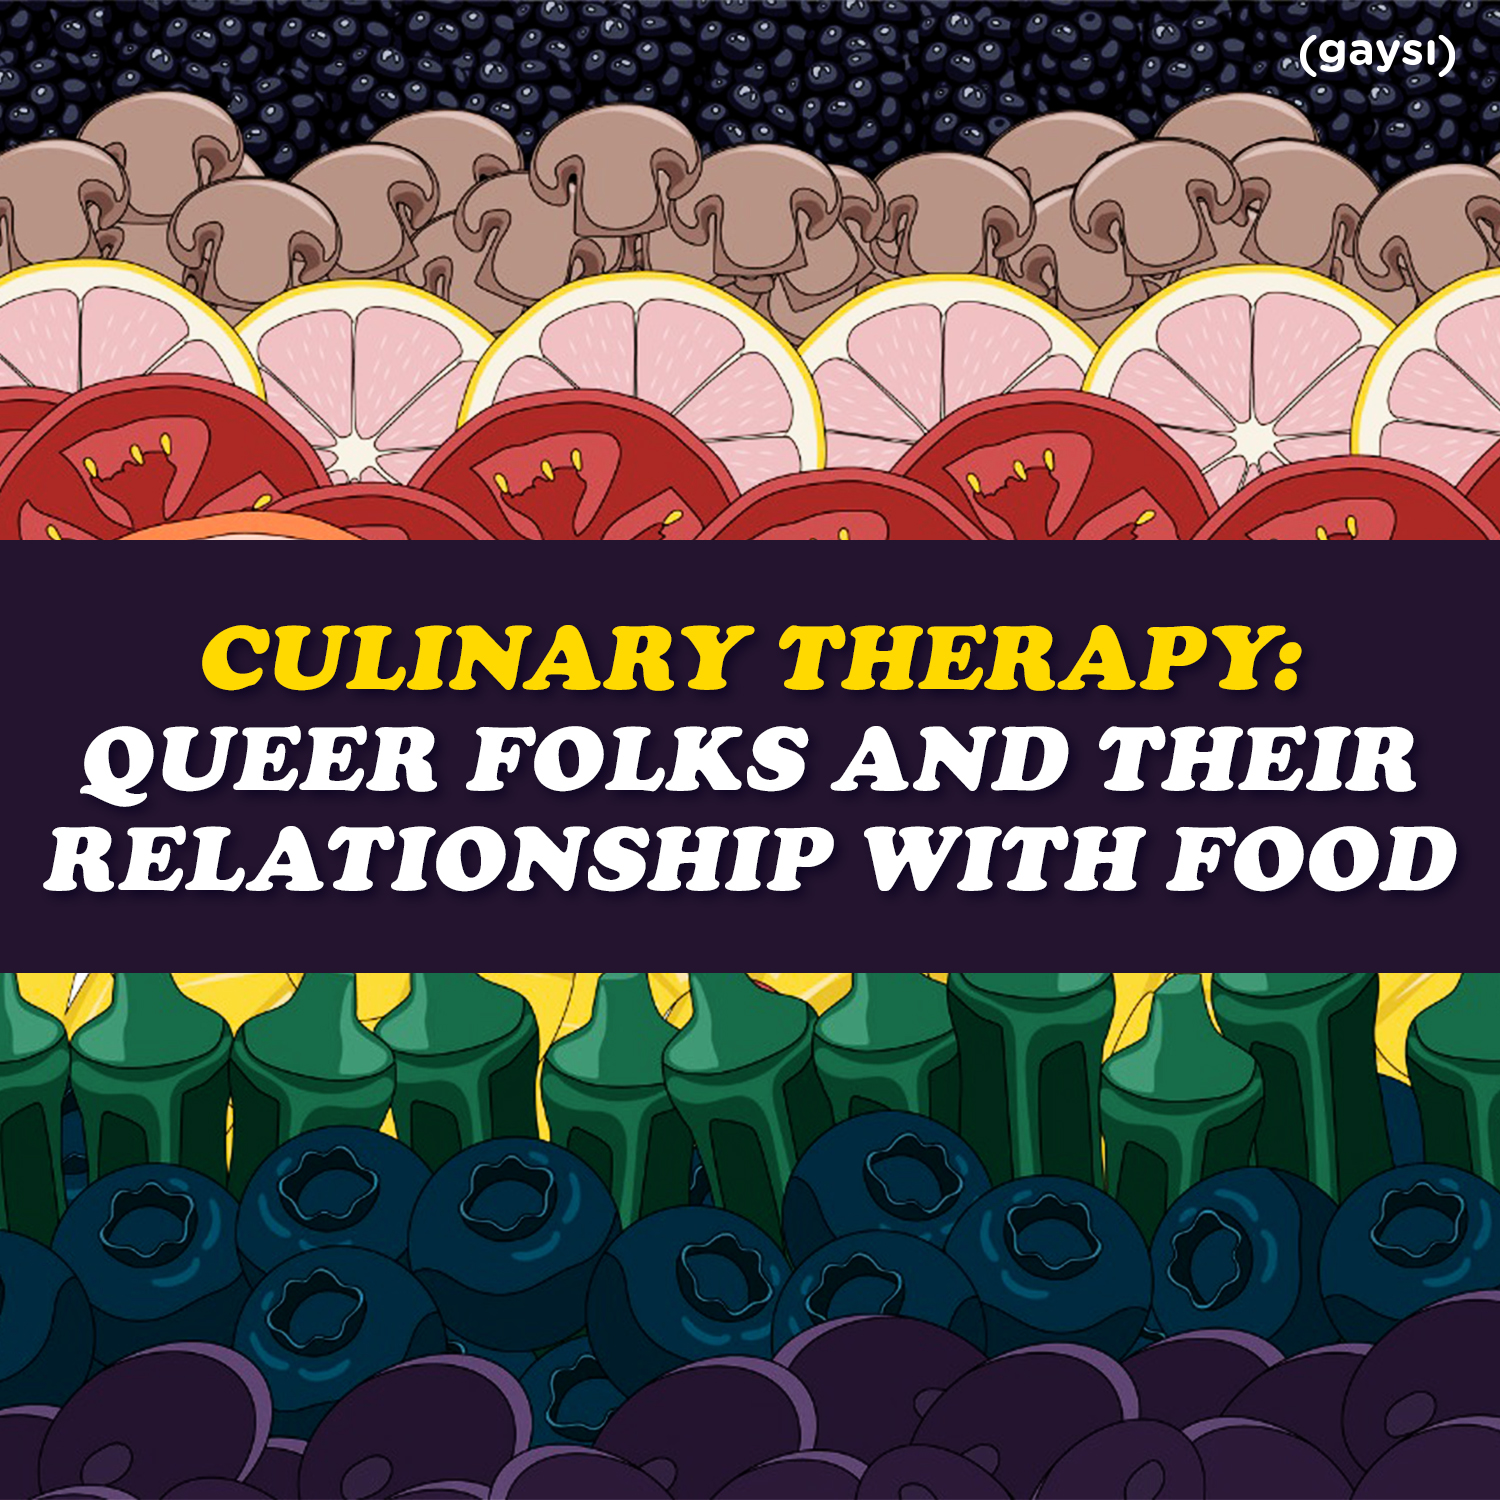 Culinary Therapy: Queer Folks And Their Relationship With Food